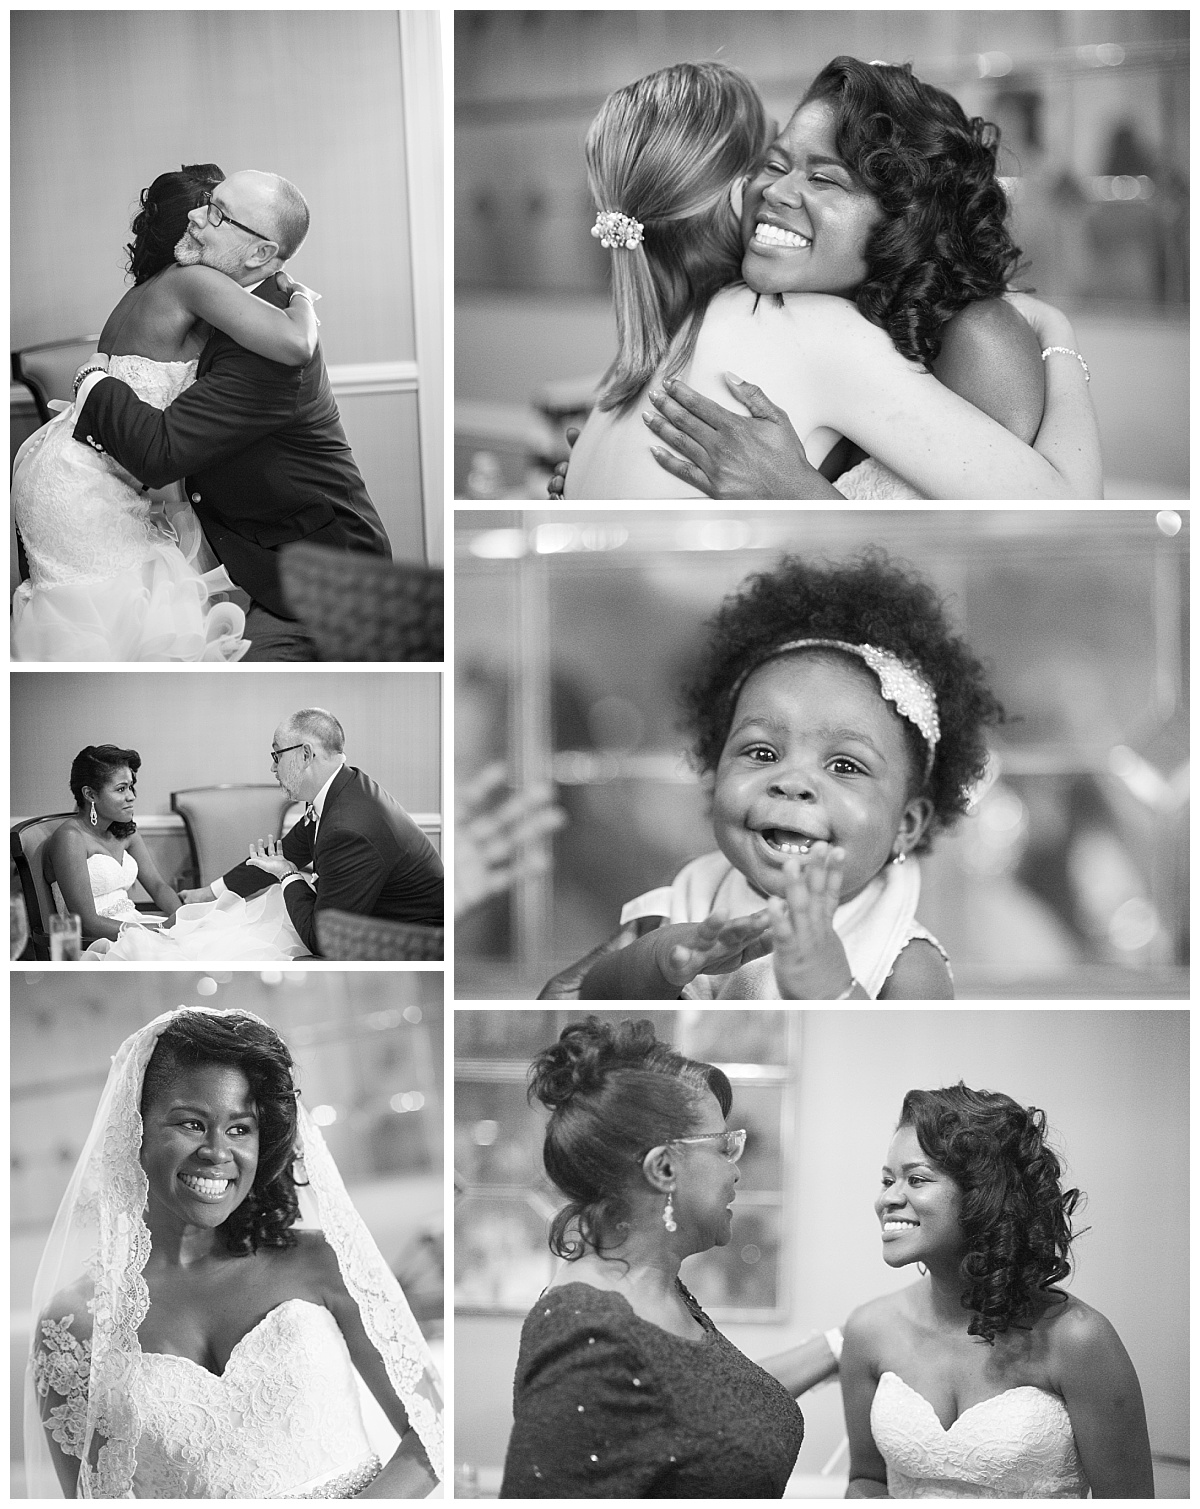 black and white wedding candid images